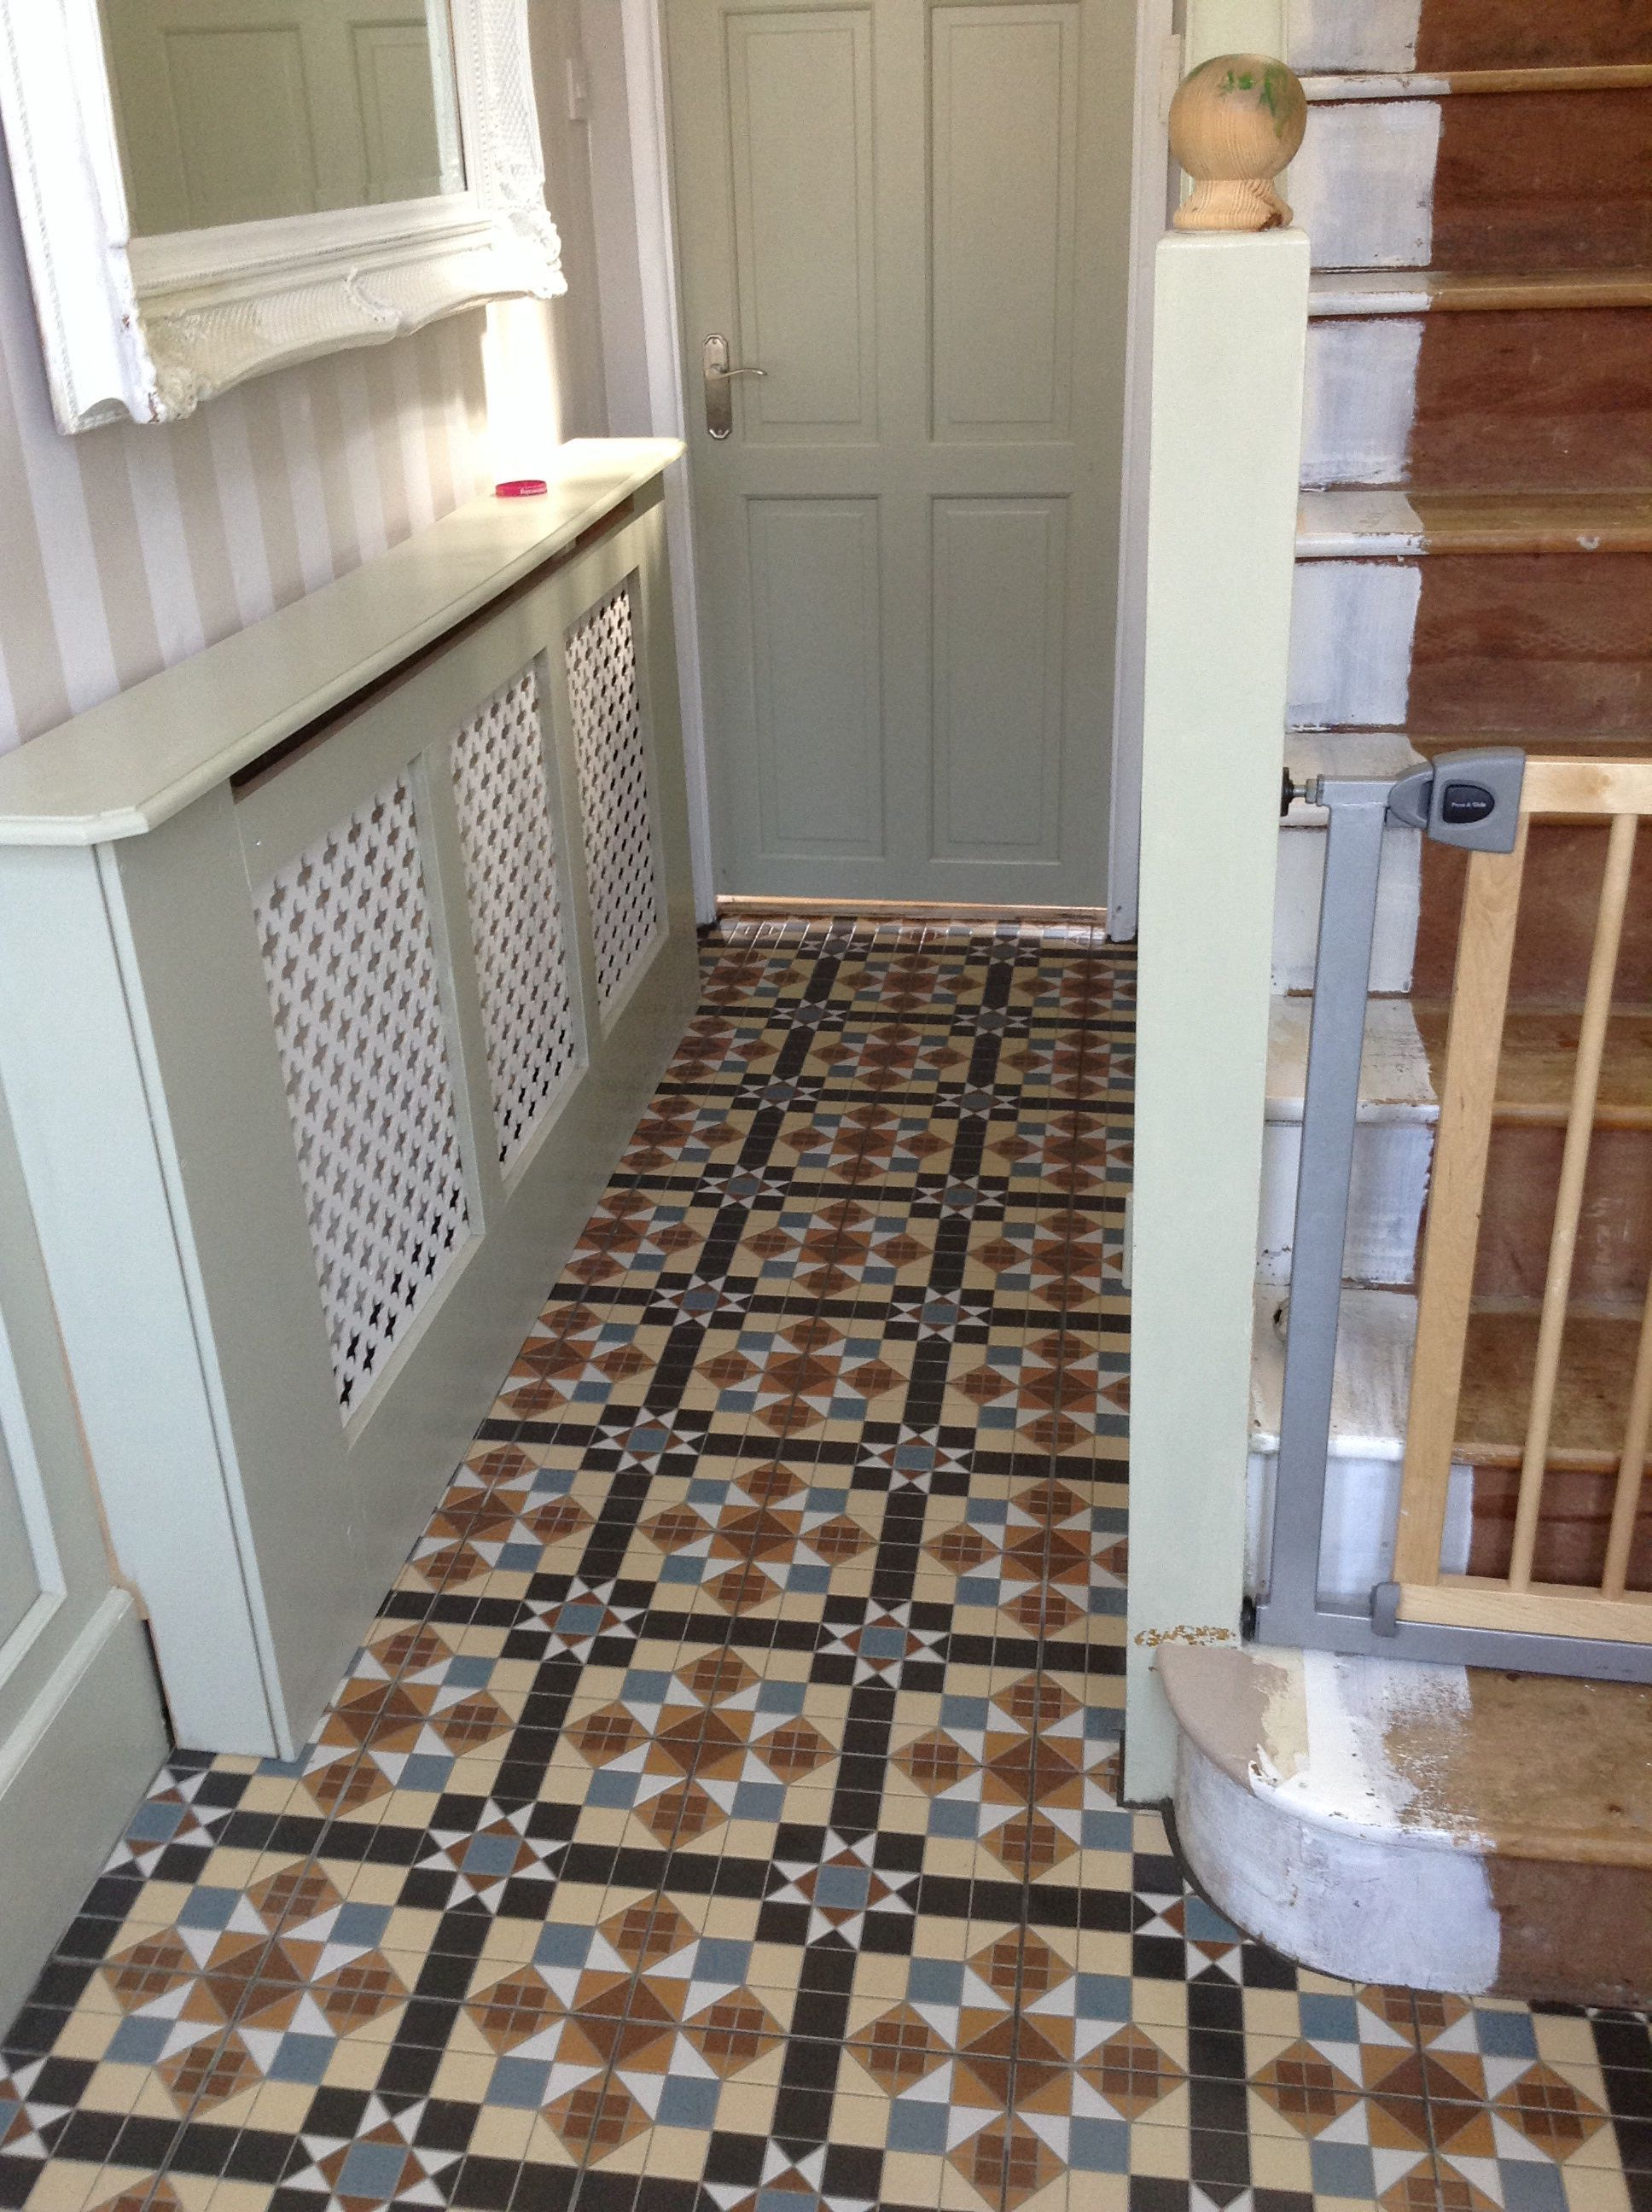 Hallway and stairs wallpaper  Freshly tiled hallway floor reproduction victorian tiles and stairs